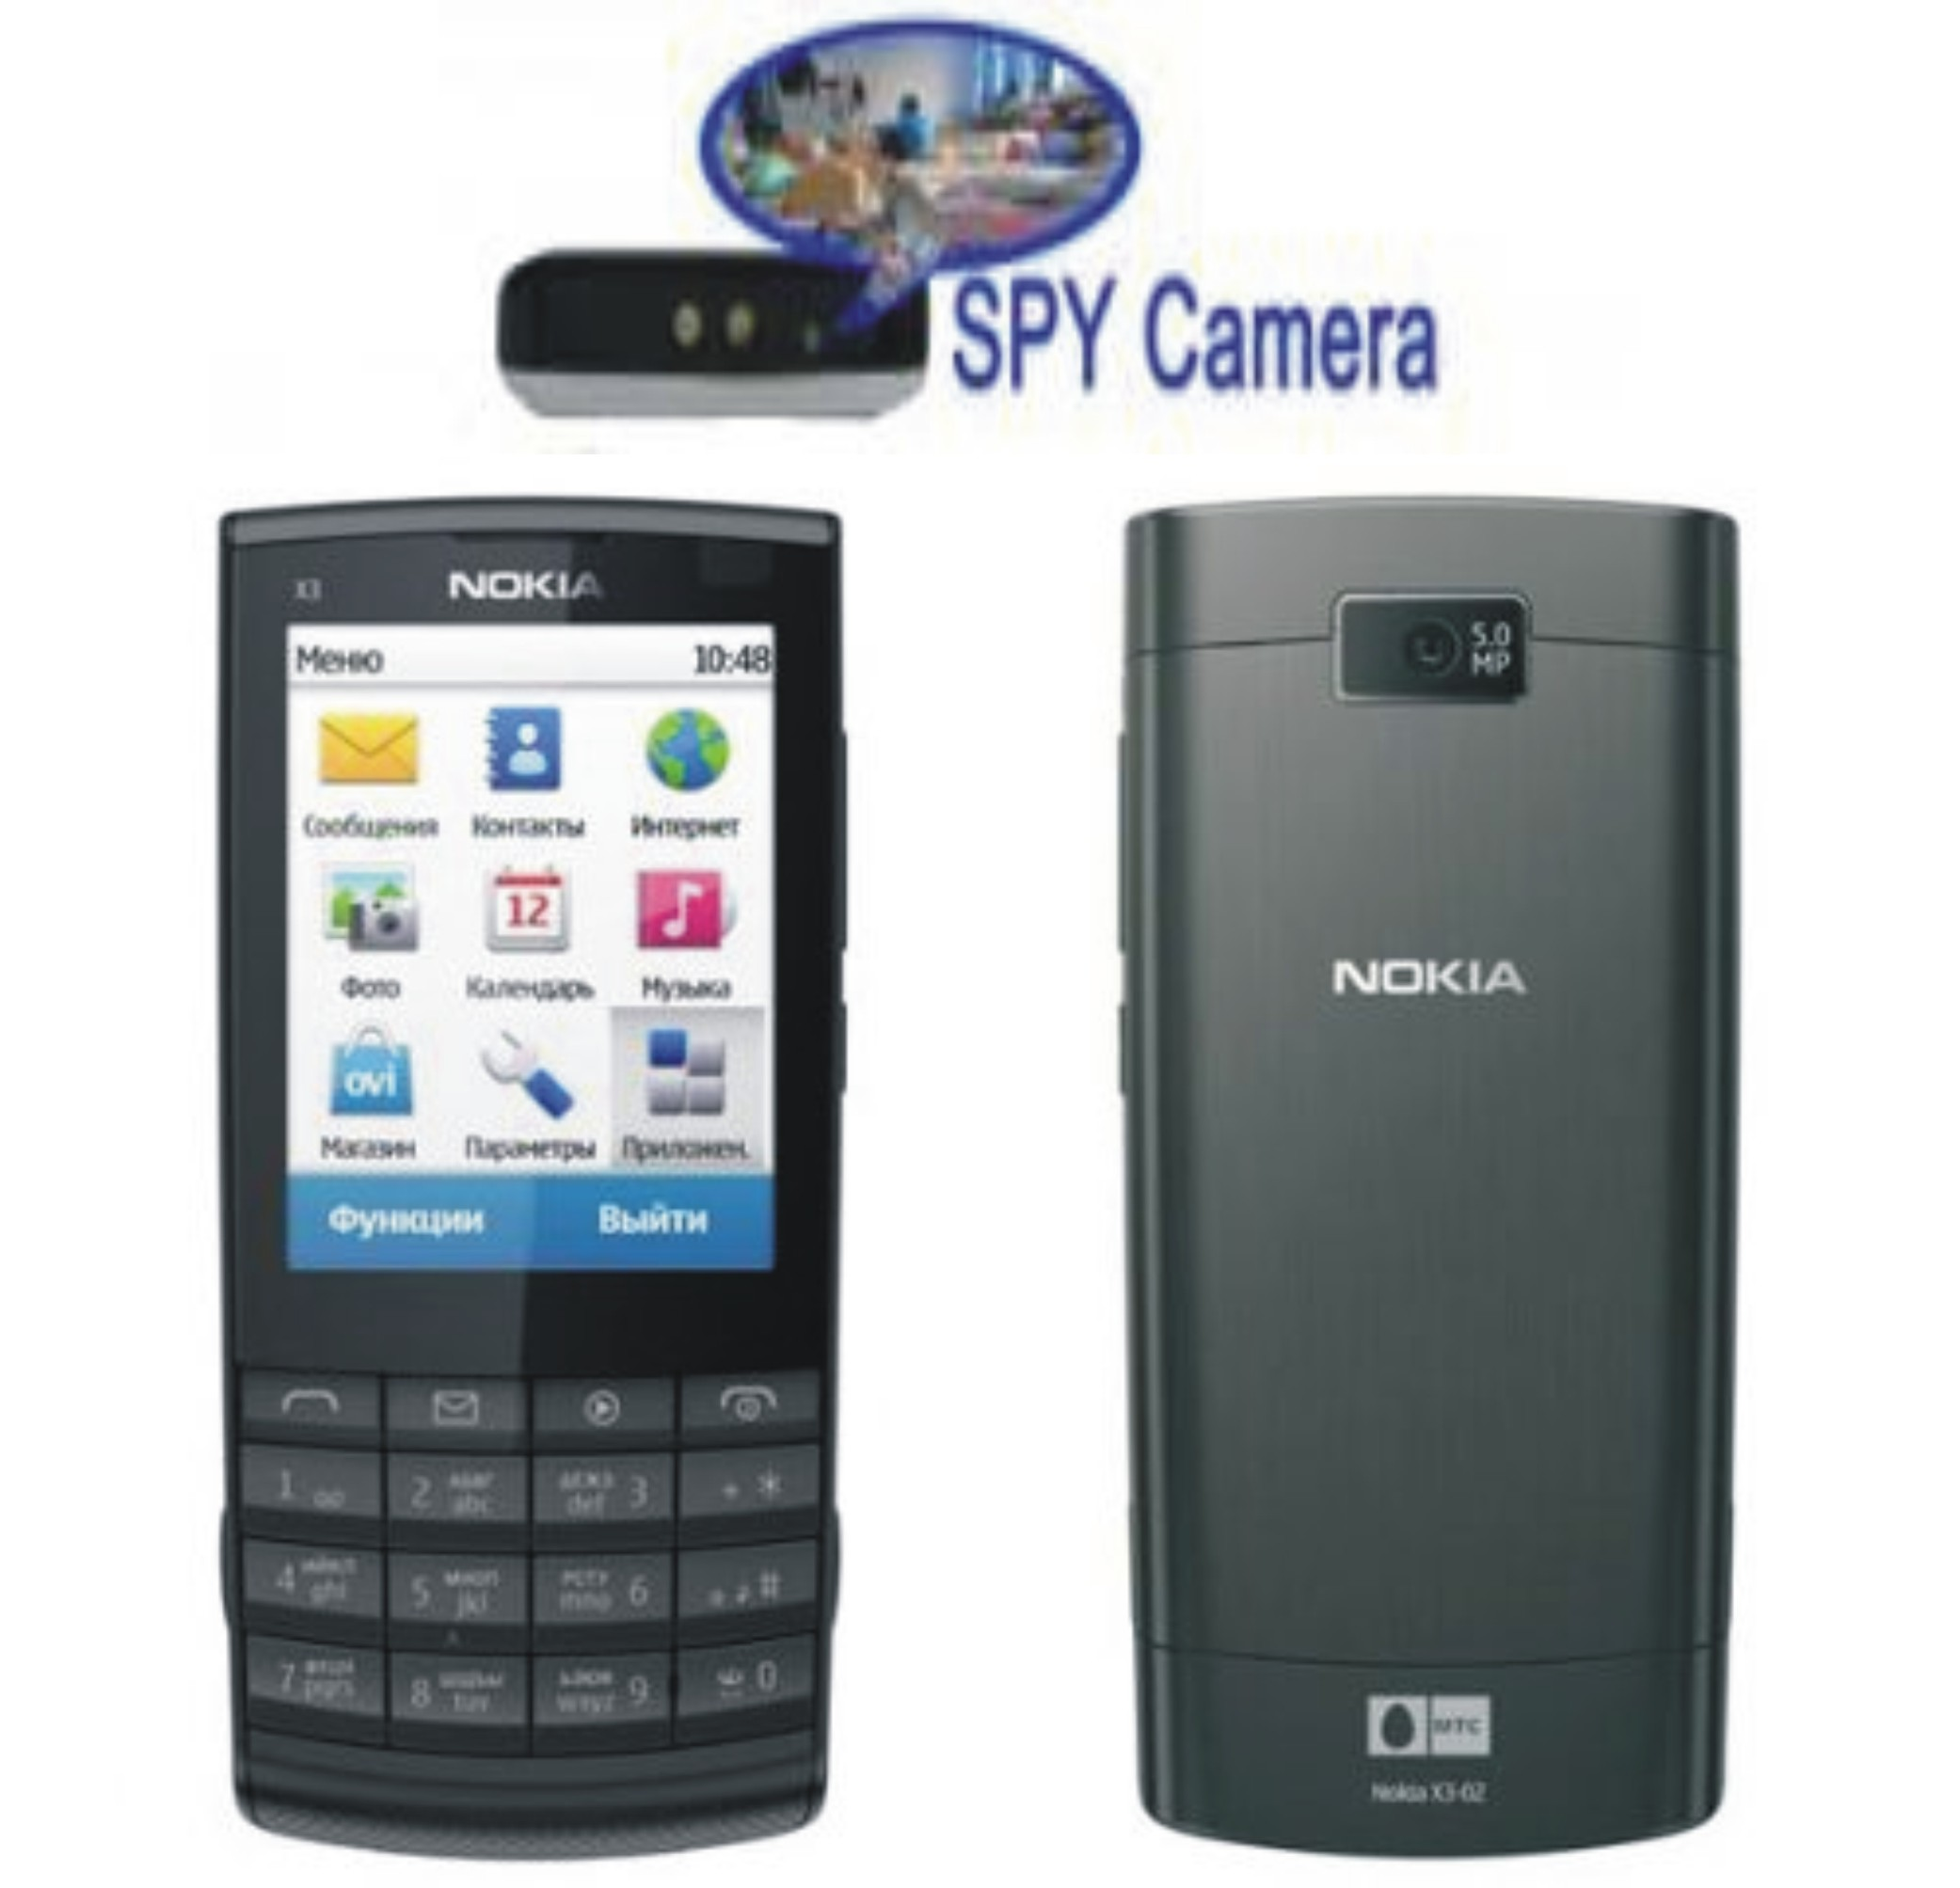 Spy Camera In Nokia Phone Touch Screen In Chhindwara